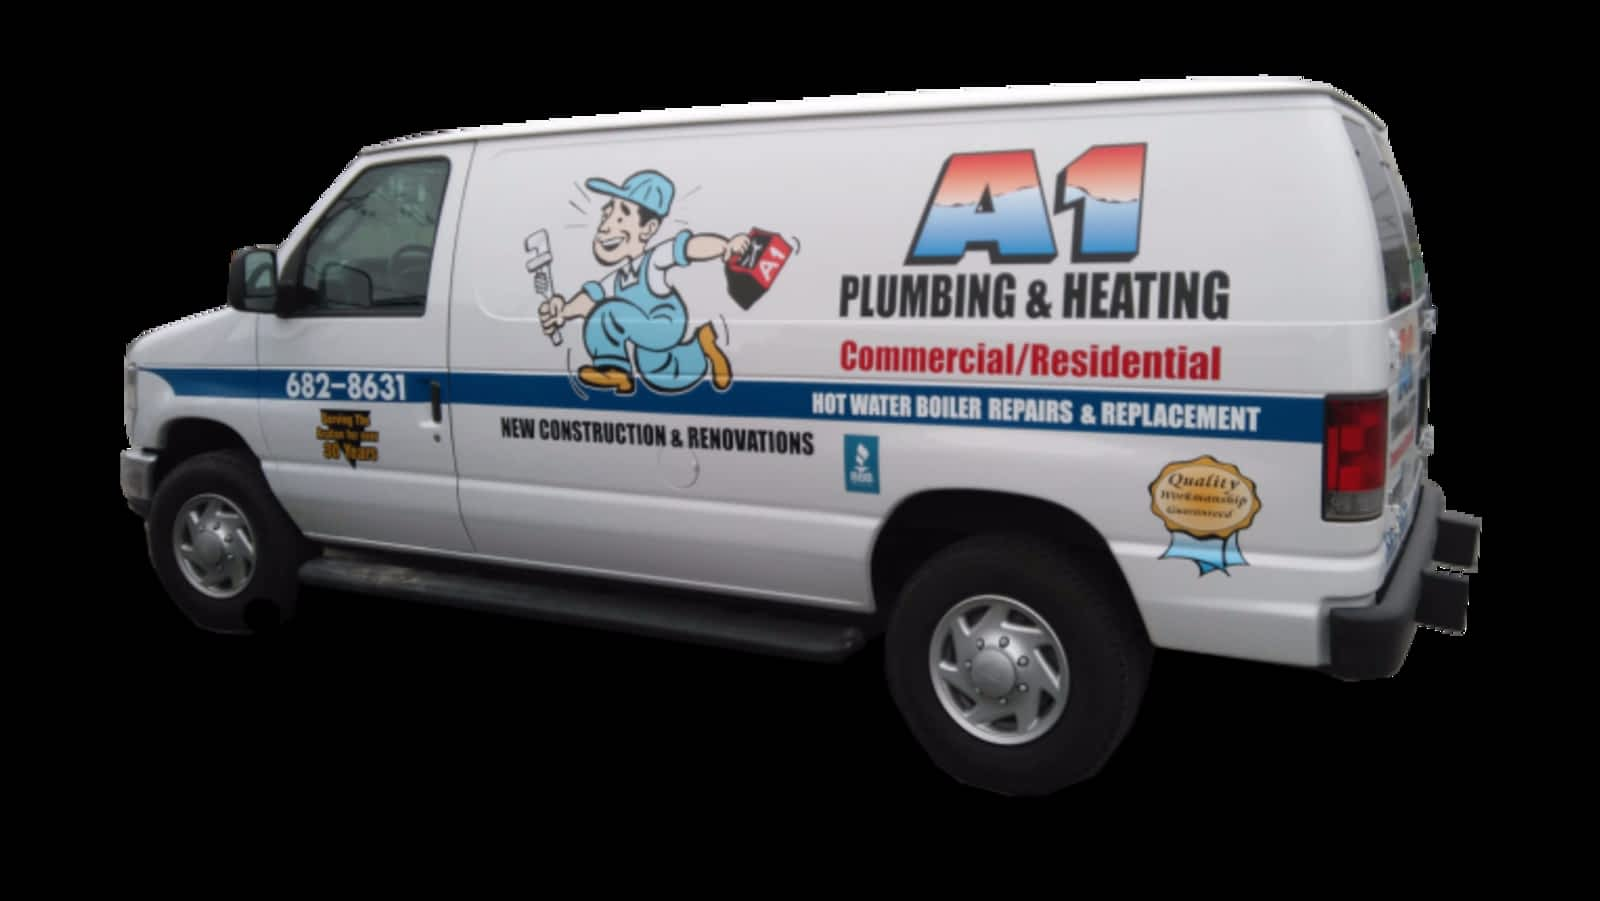 m ypapi mp st and page pic lg canpages nl photo heating plumbing johns ltd